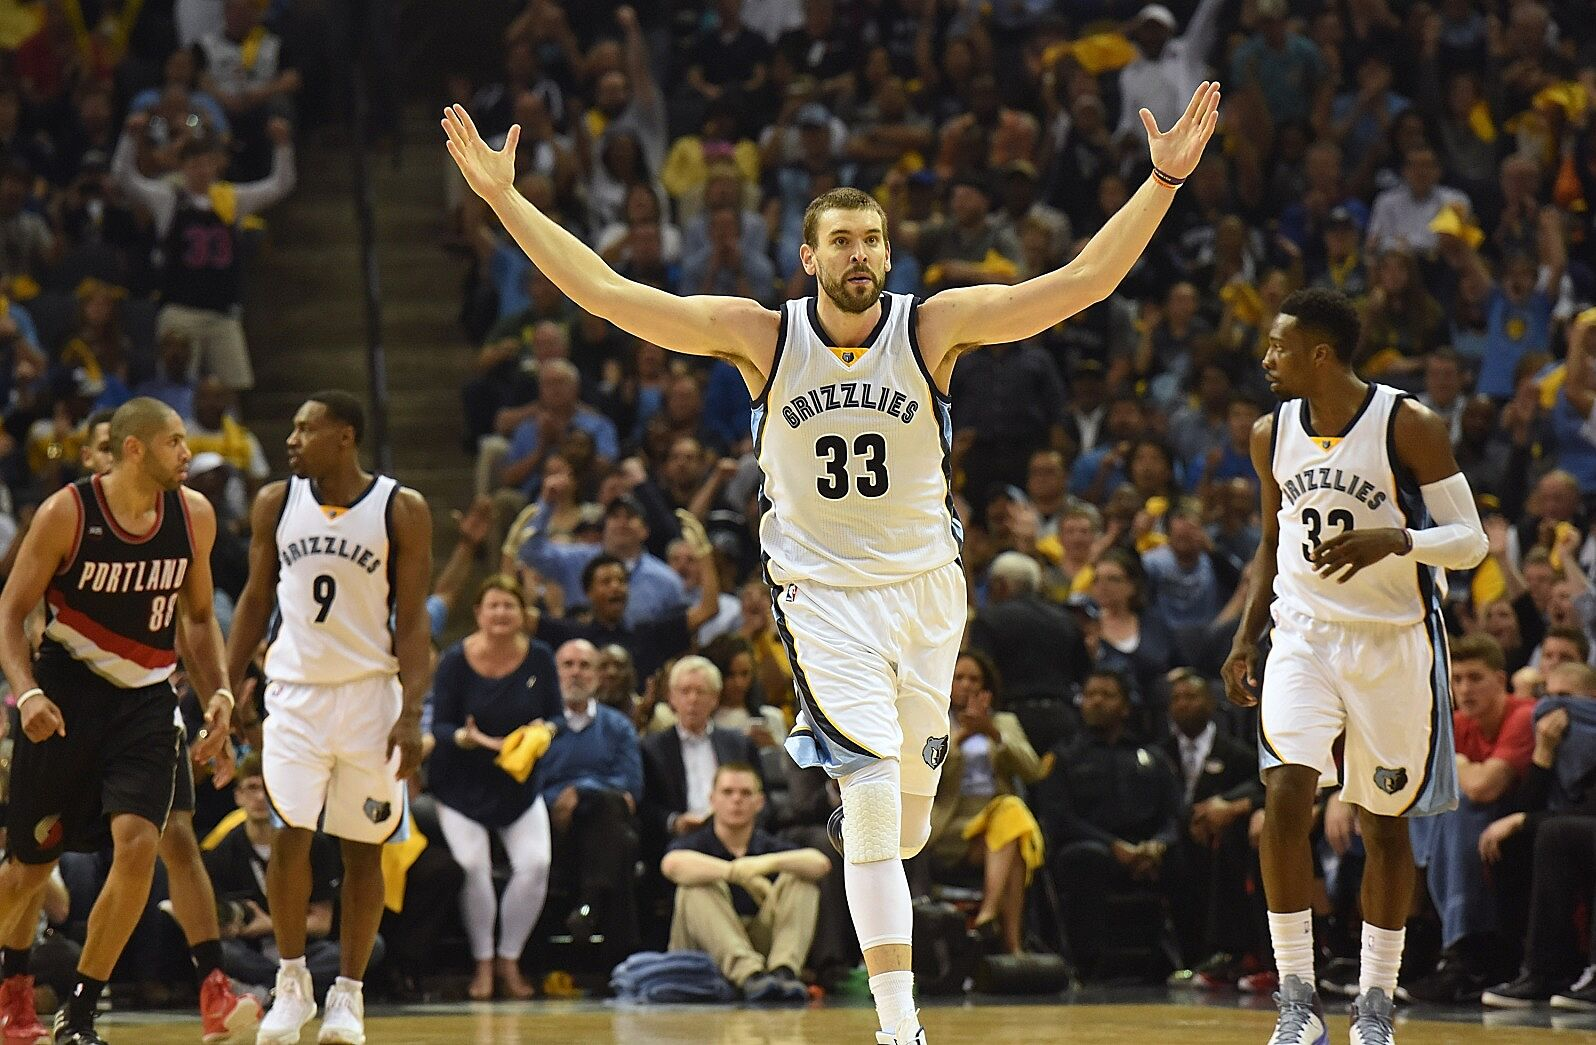 Marc Gasol's remarkable career as a remarkable person